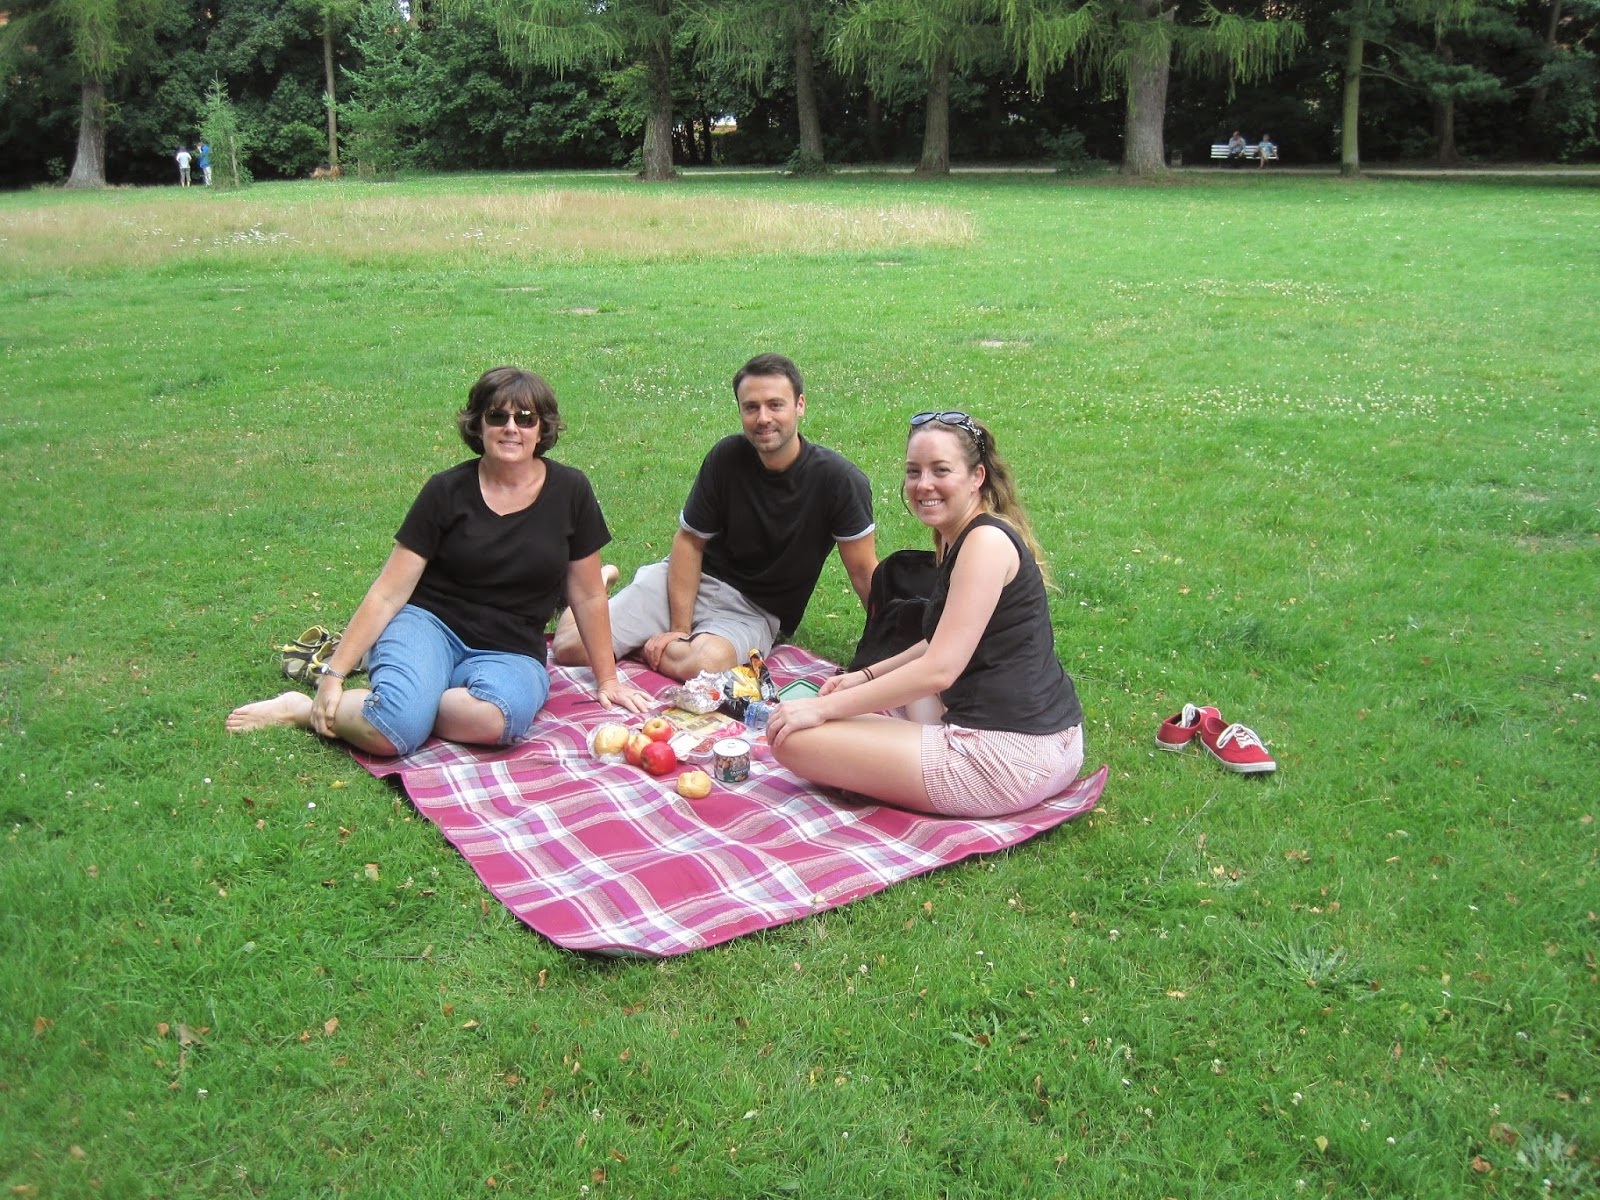 Picnic in Kurpark